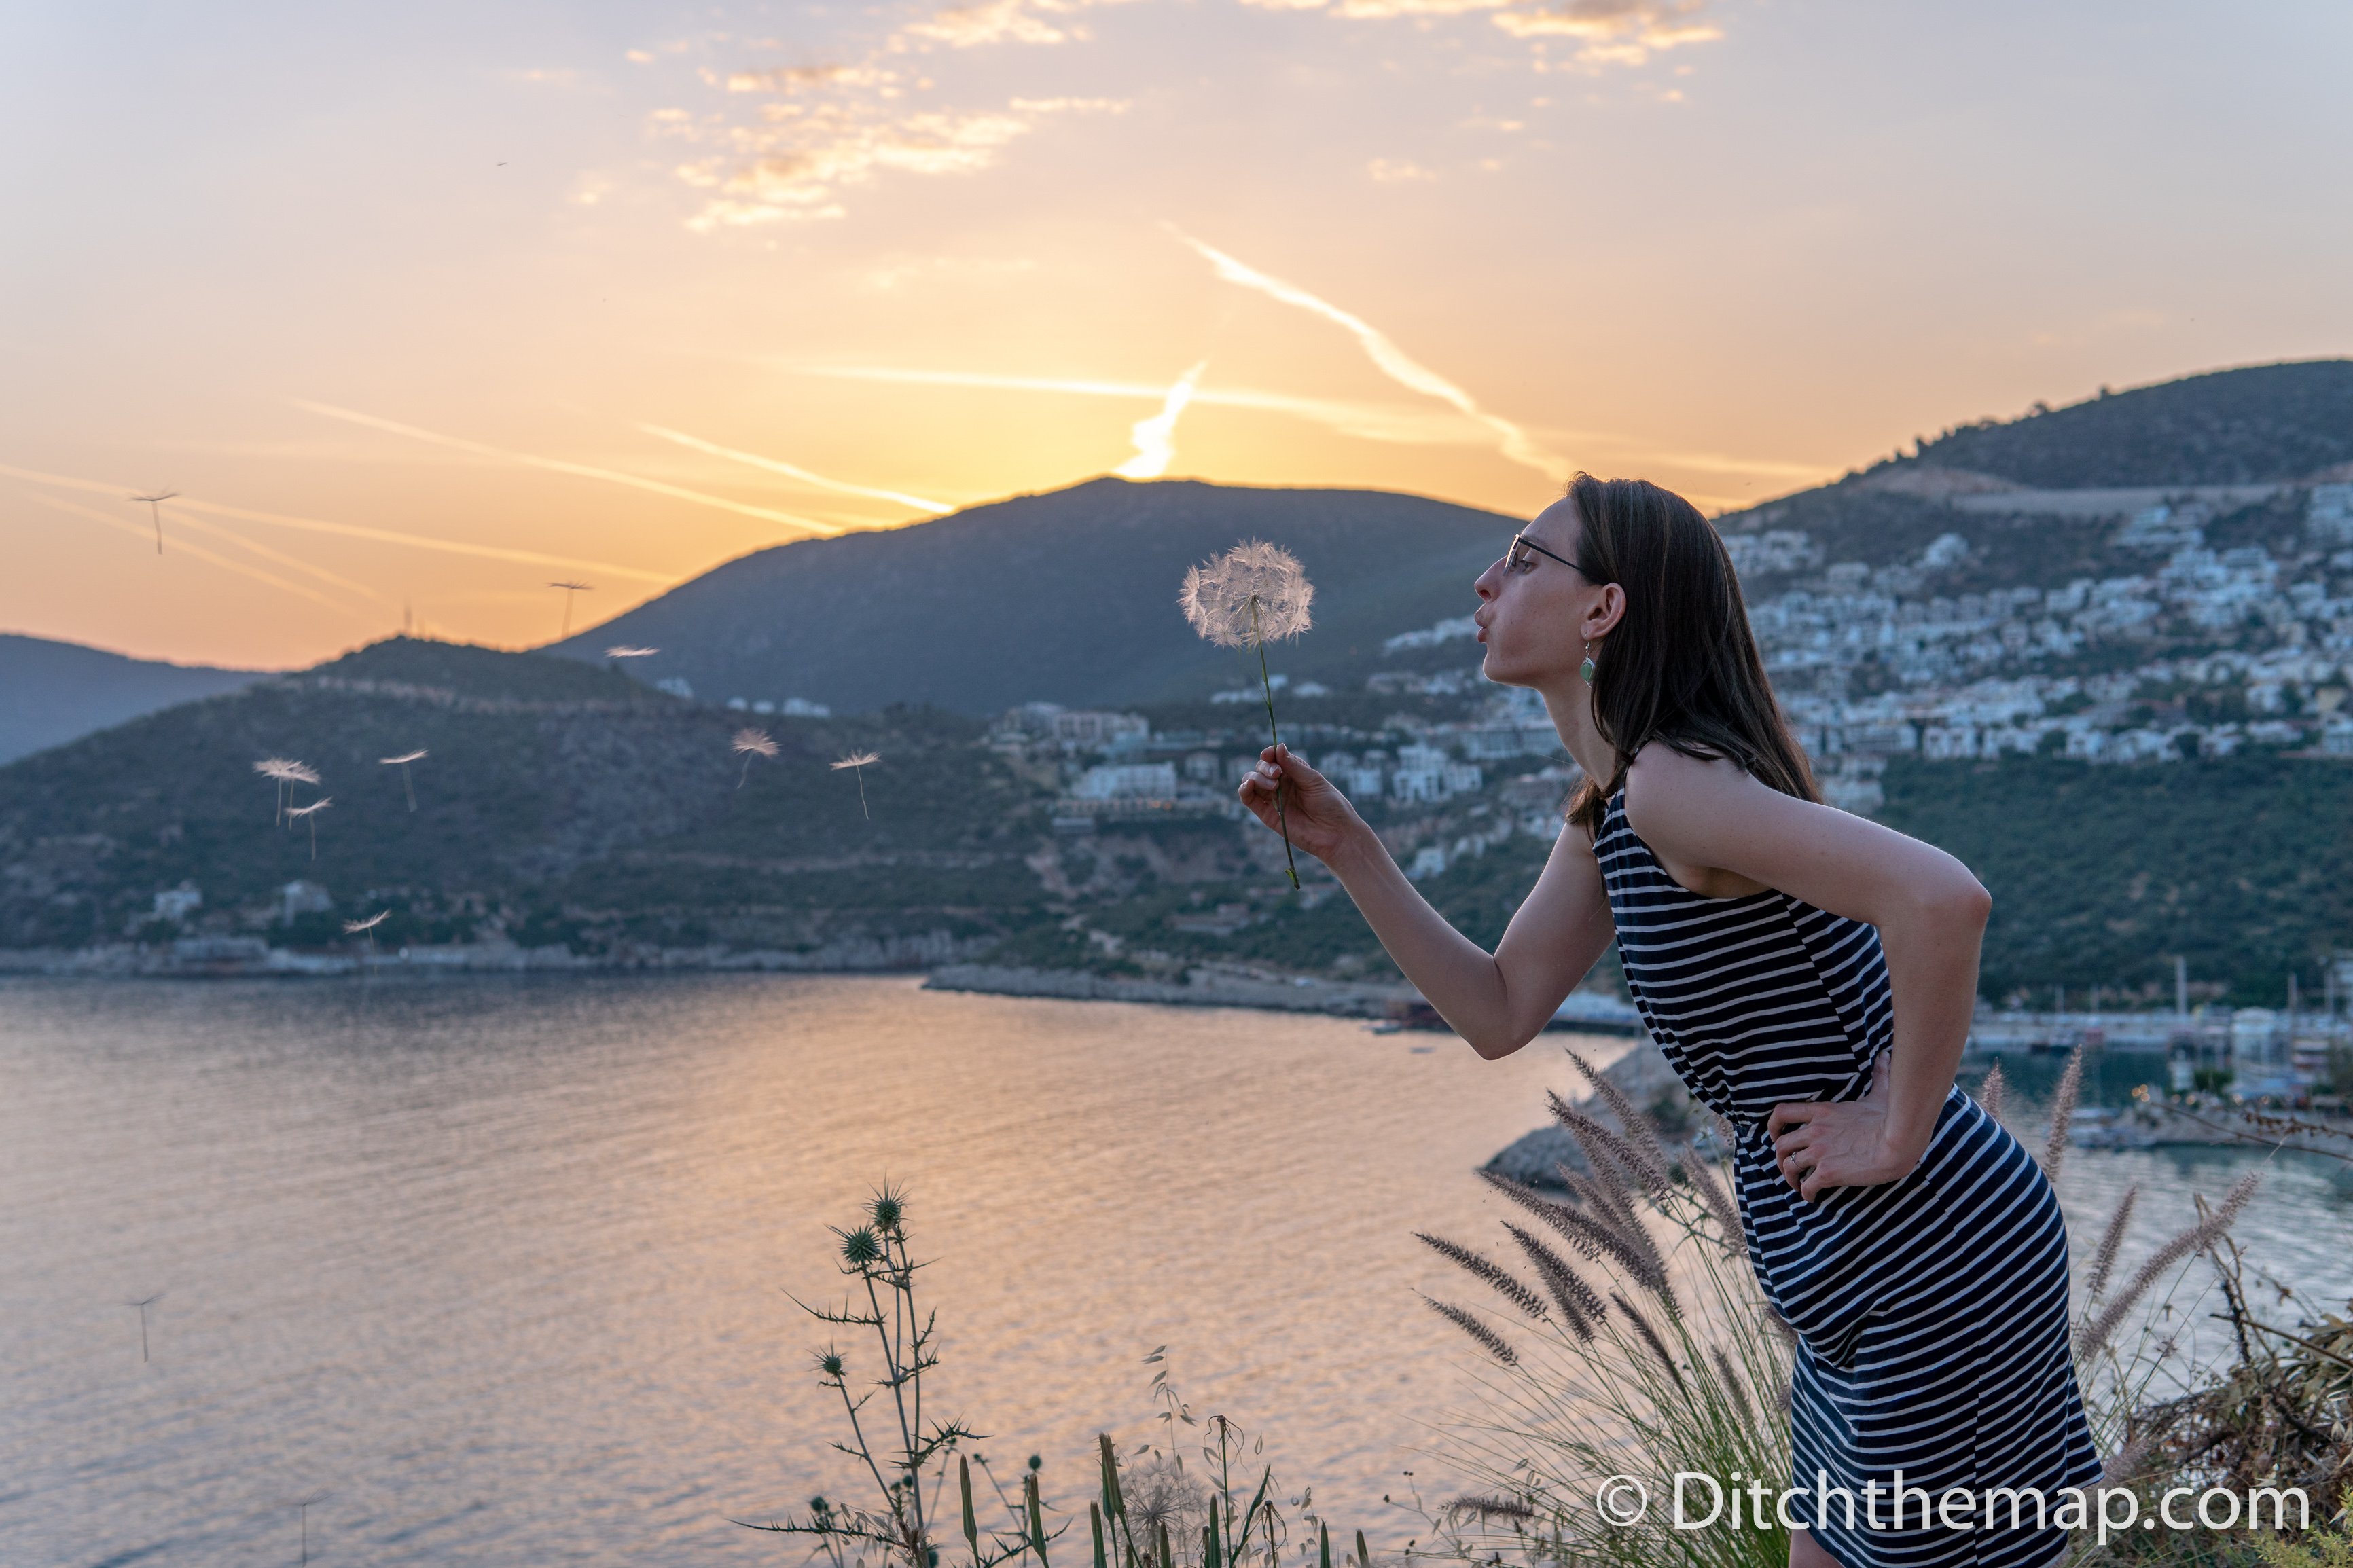 A girl blowing a dandelion during sunset next to a lake and mountains